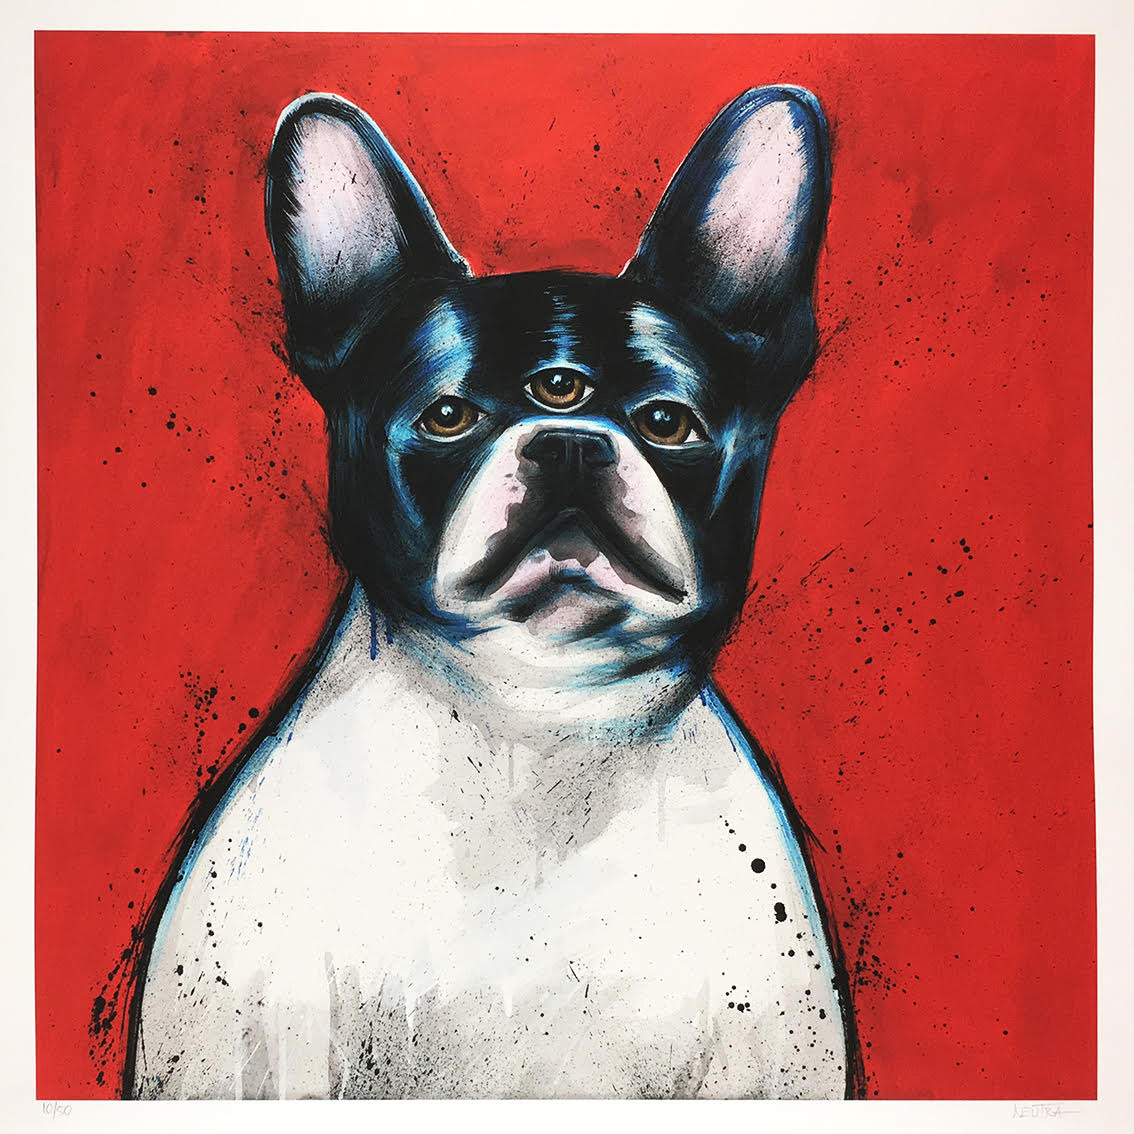 He Knows - Three Eyed French Bulldog Print